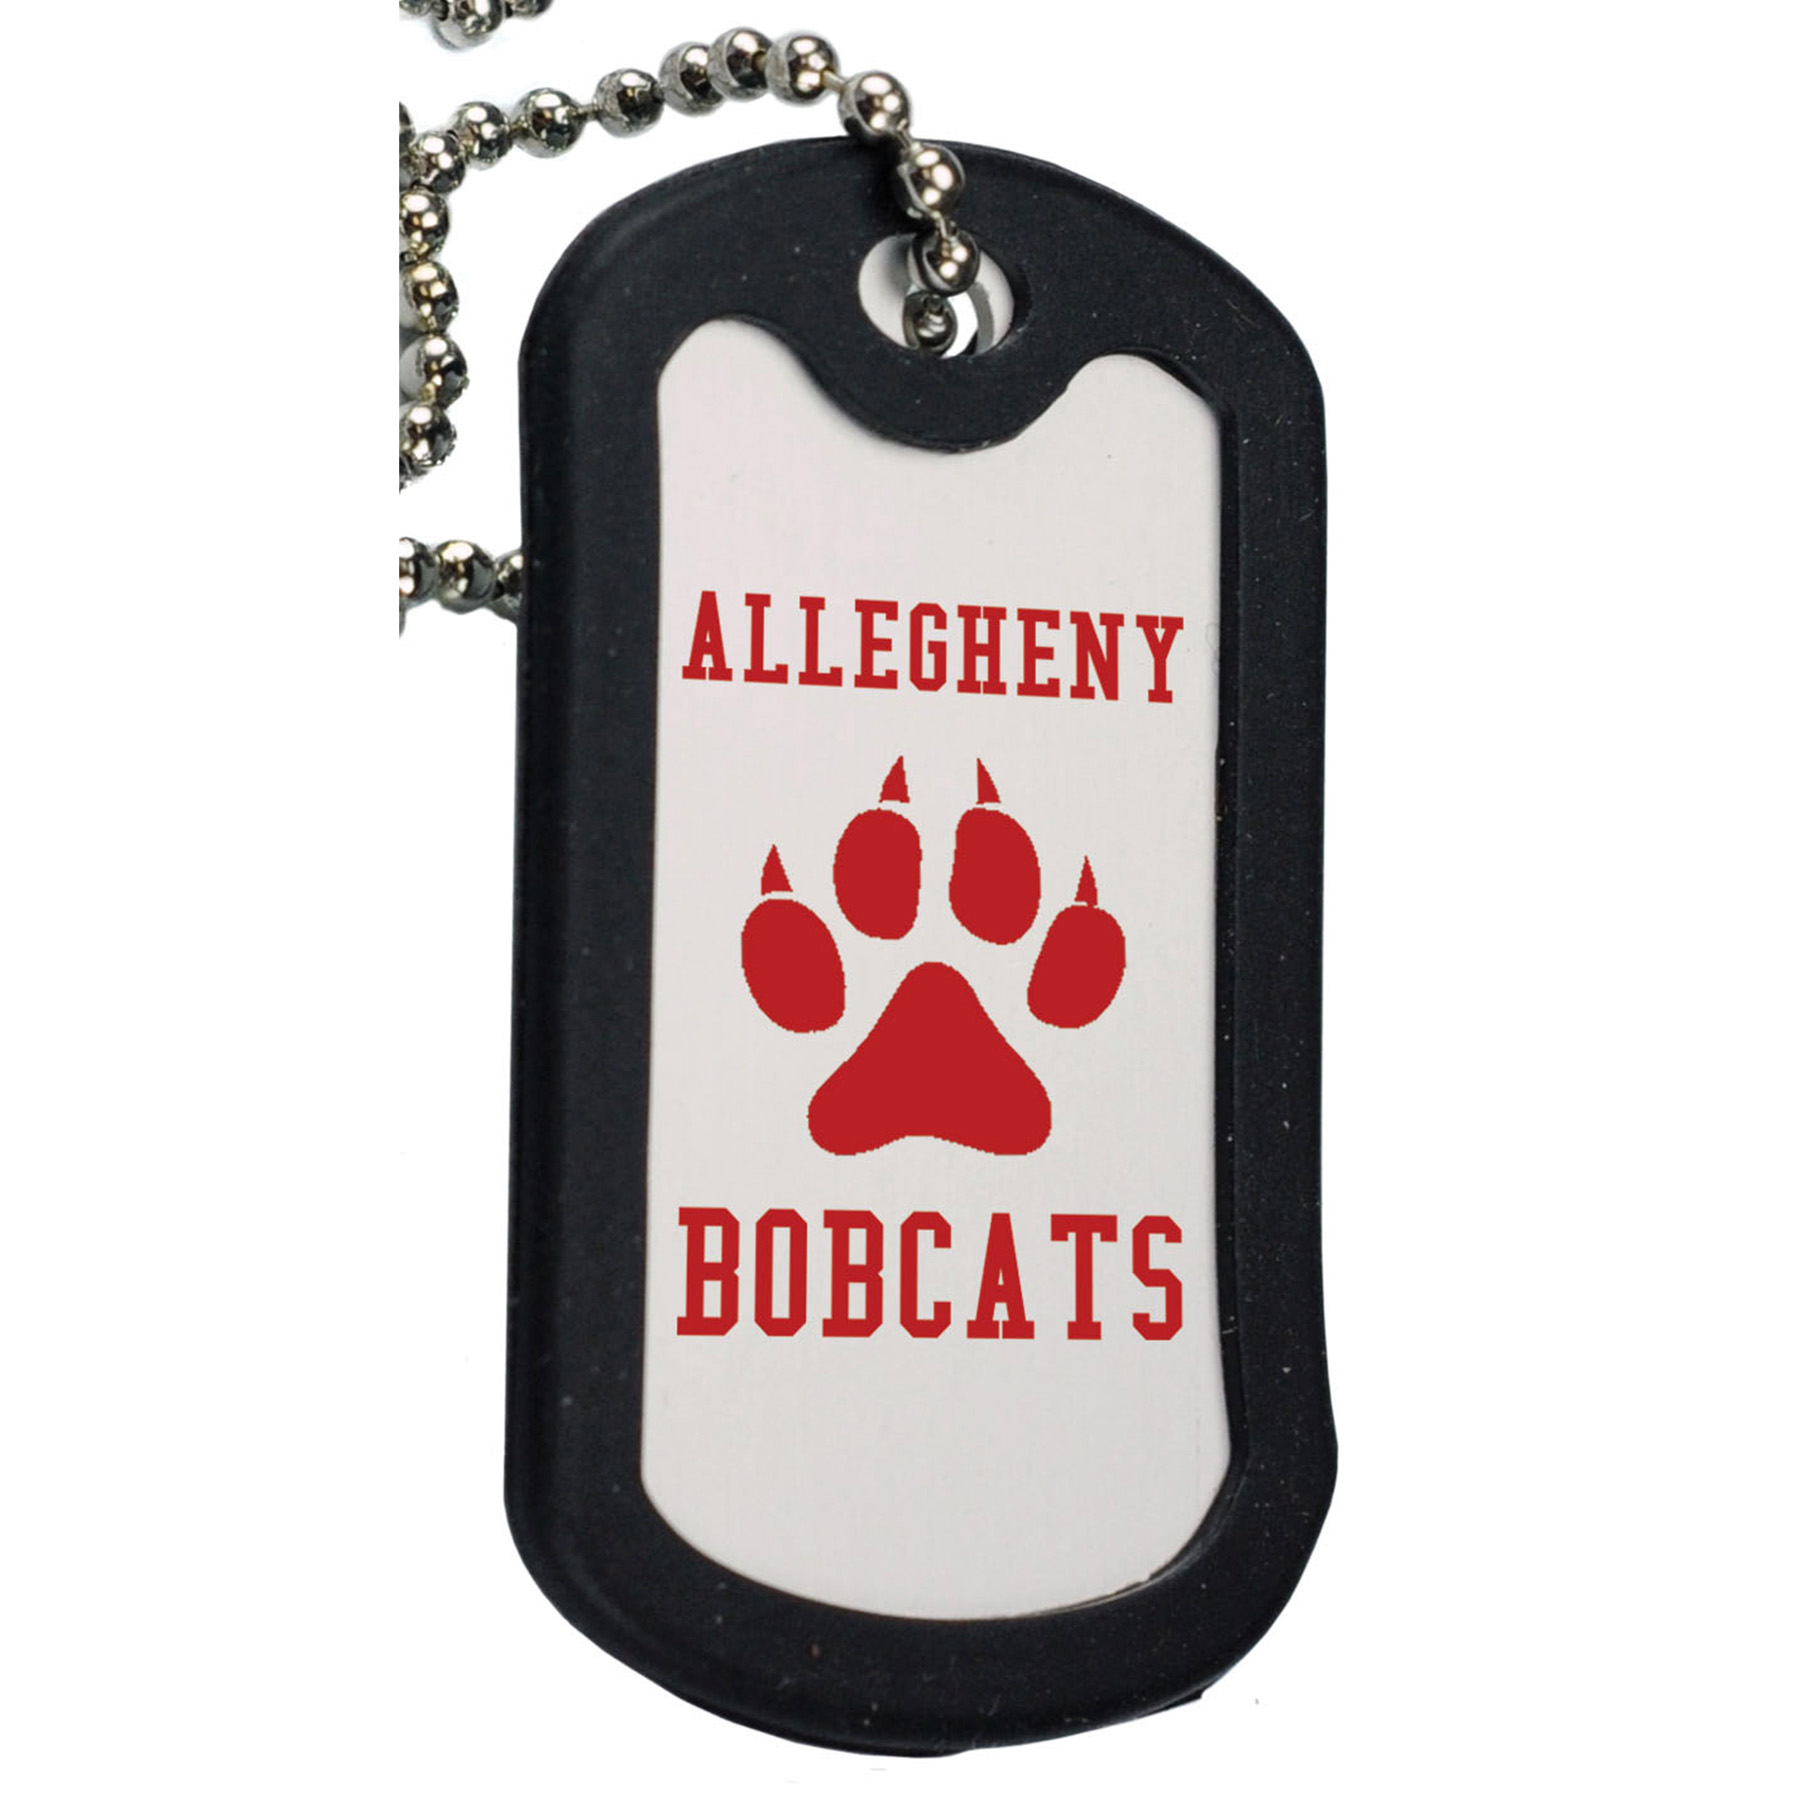 Anodized Aluminum Dog Tag w/ Black Trim, 143-K, One Colour Imprint